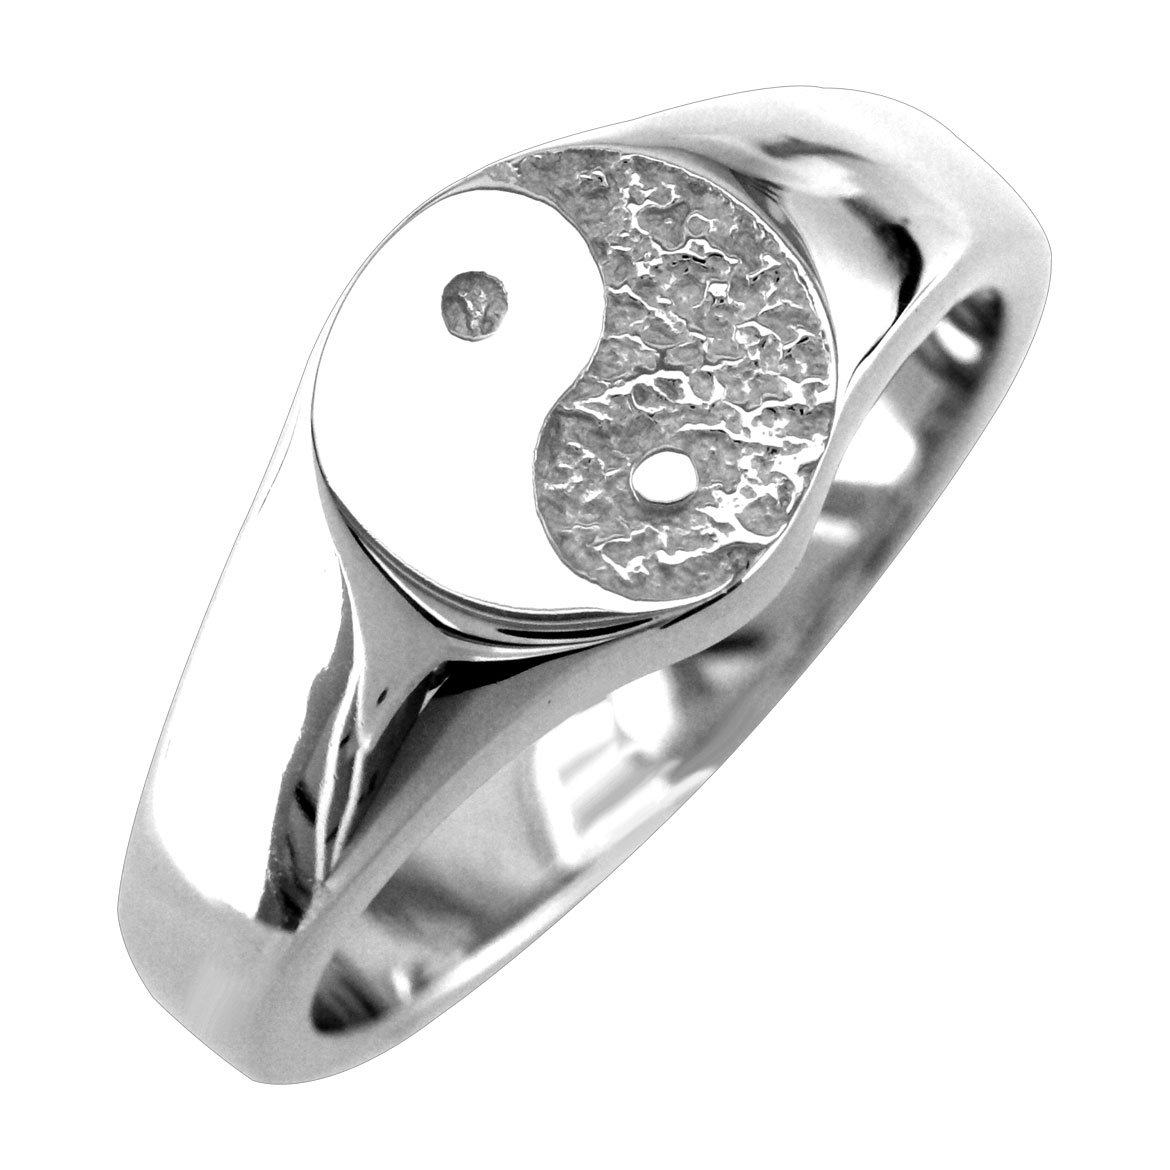 Solid Yin Yang Ring in Sterling Silver - size 6.5